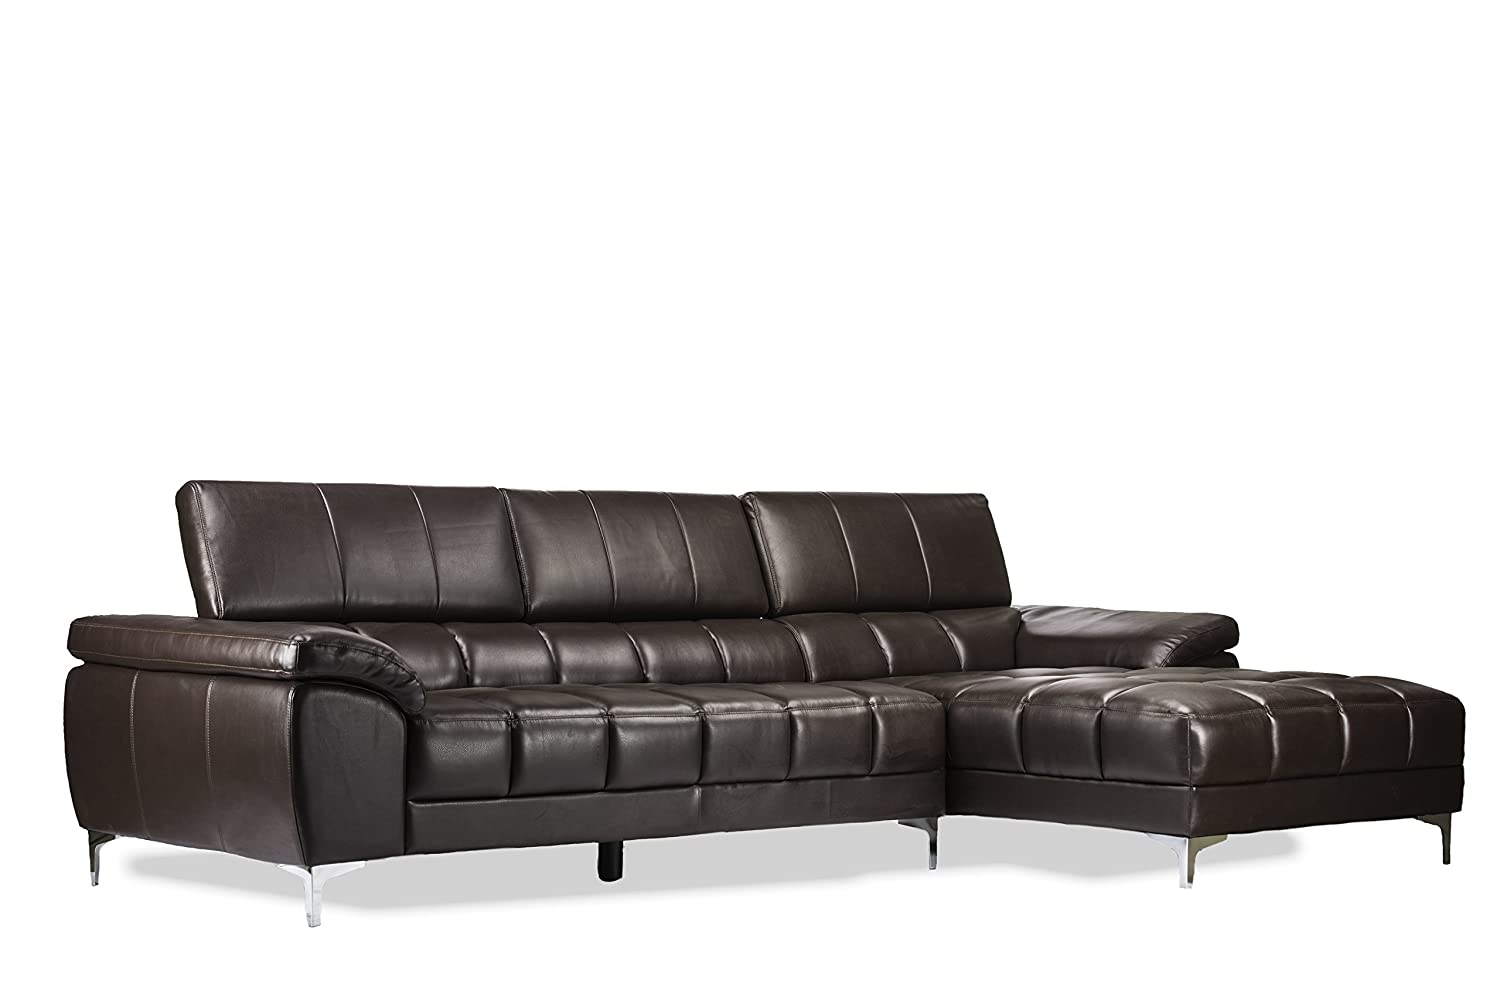 Baxton Studio Sosegado Leather Sectional Sofa with Right Facing Chaise - Brown